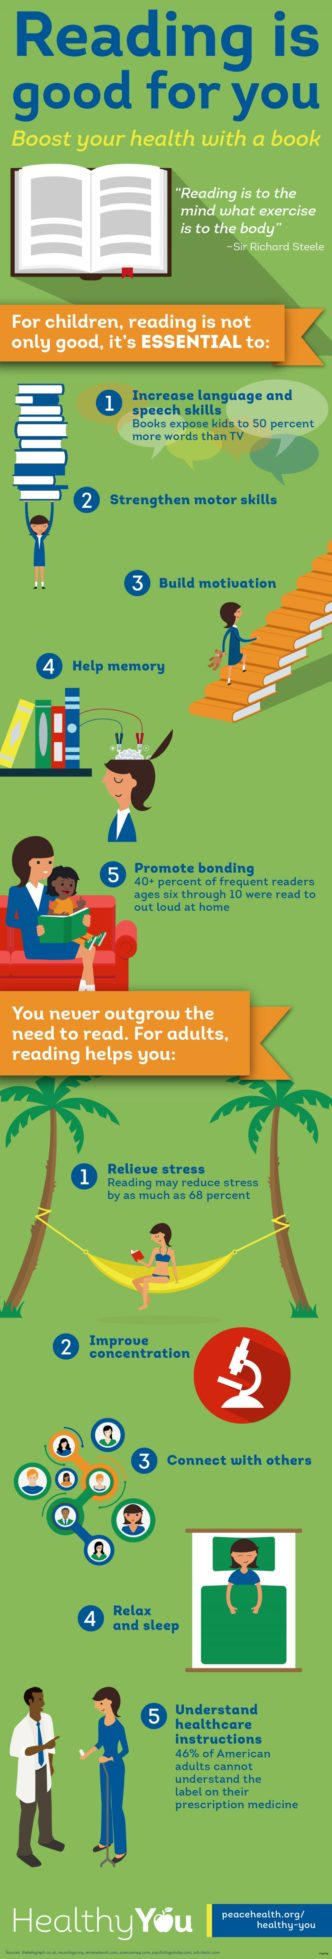 5 ways reading is good for your health #infographic